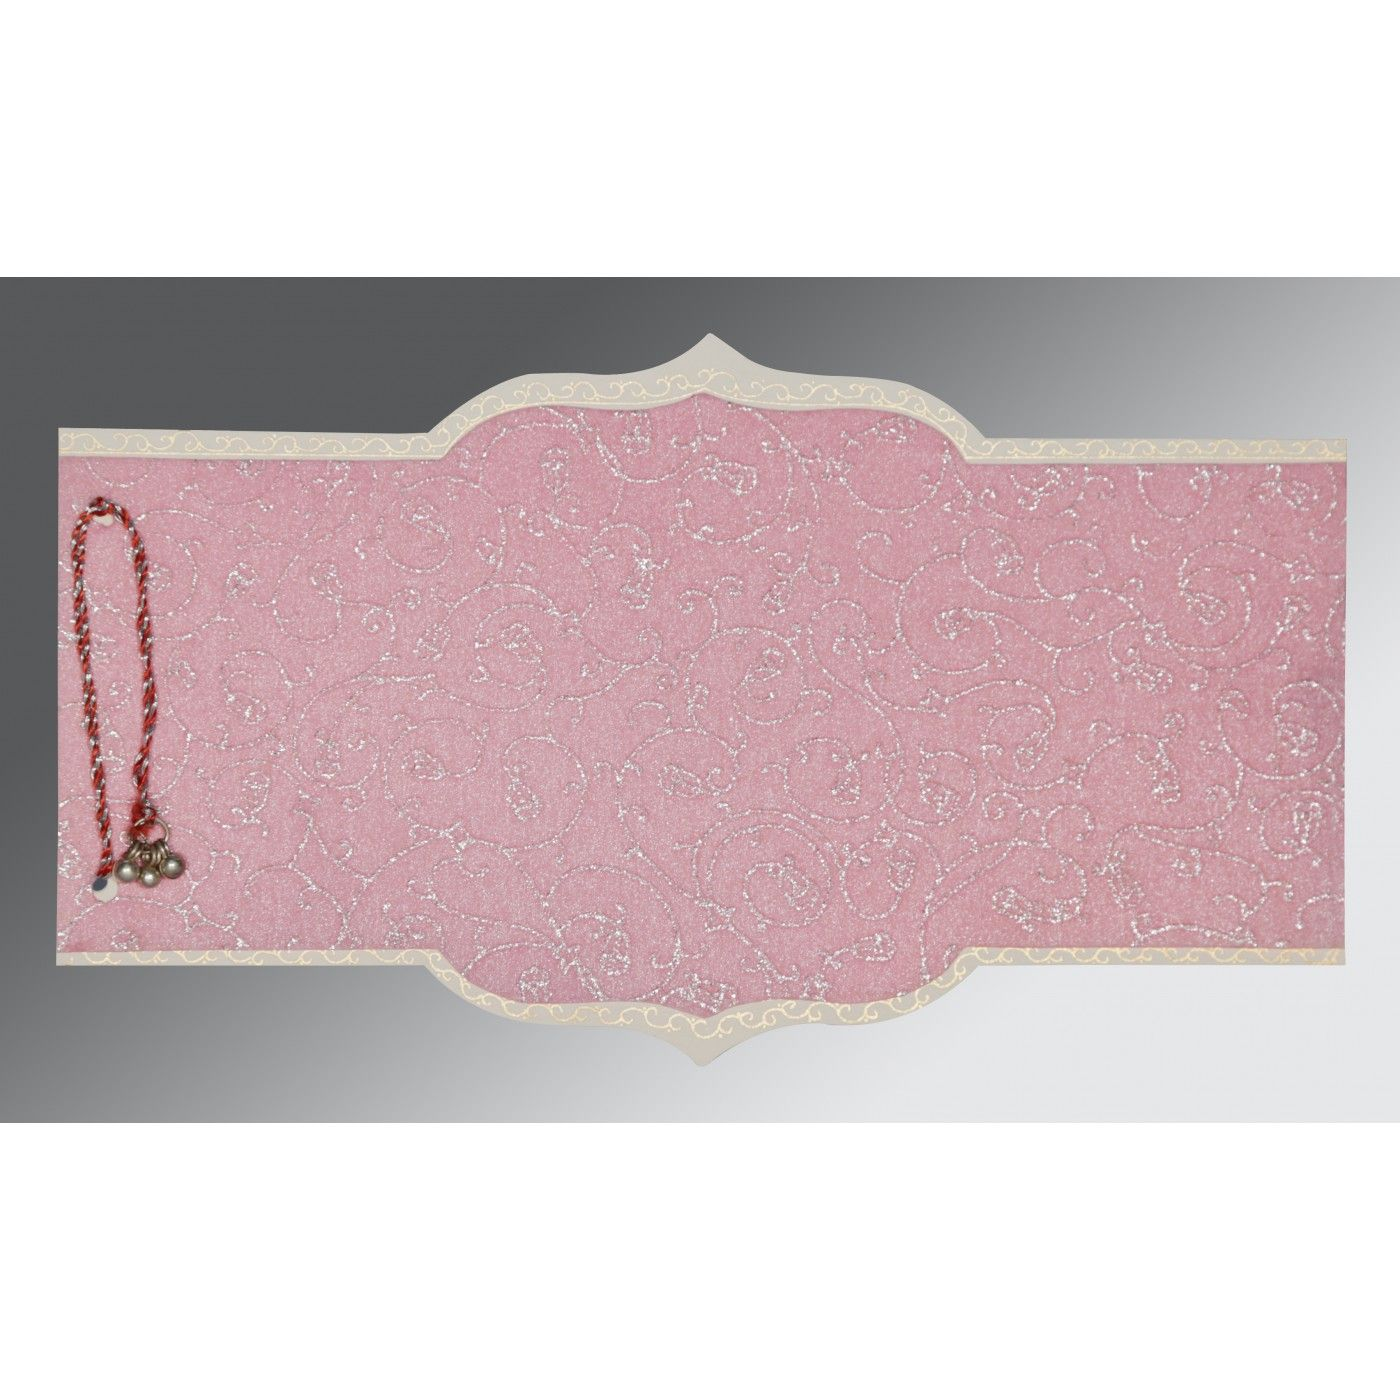 AZALEA PINK WOOLY GLITTER WEDDING CARD : CD-1351 - IndianWeddingCards